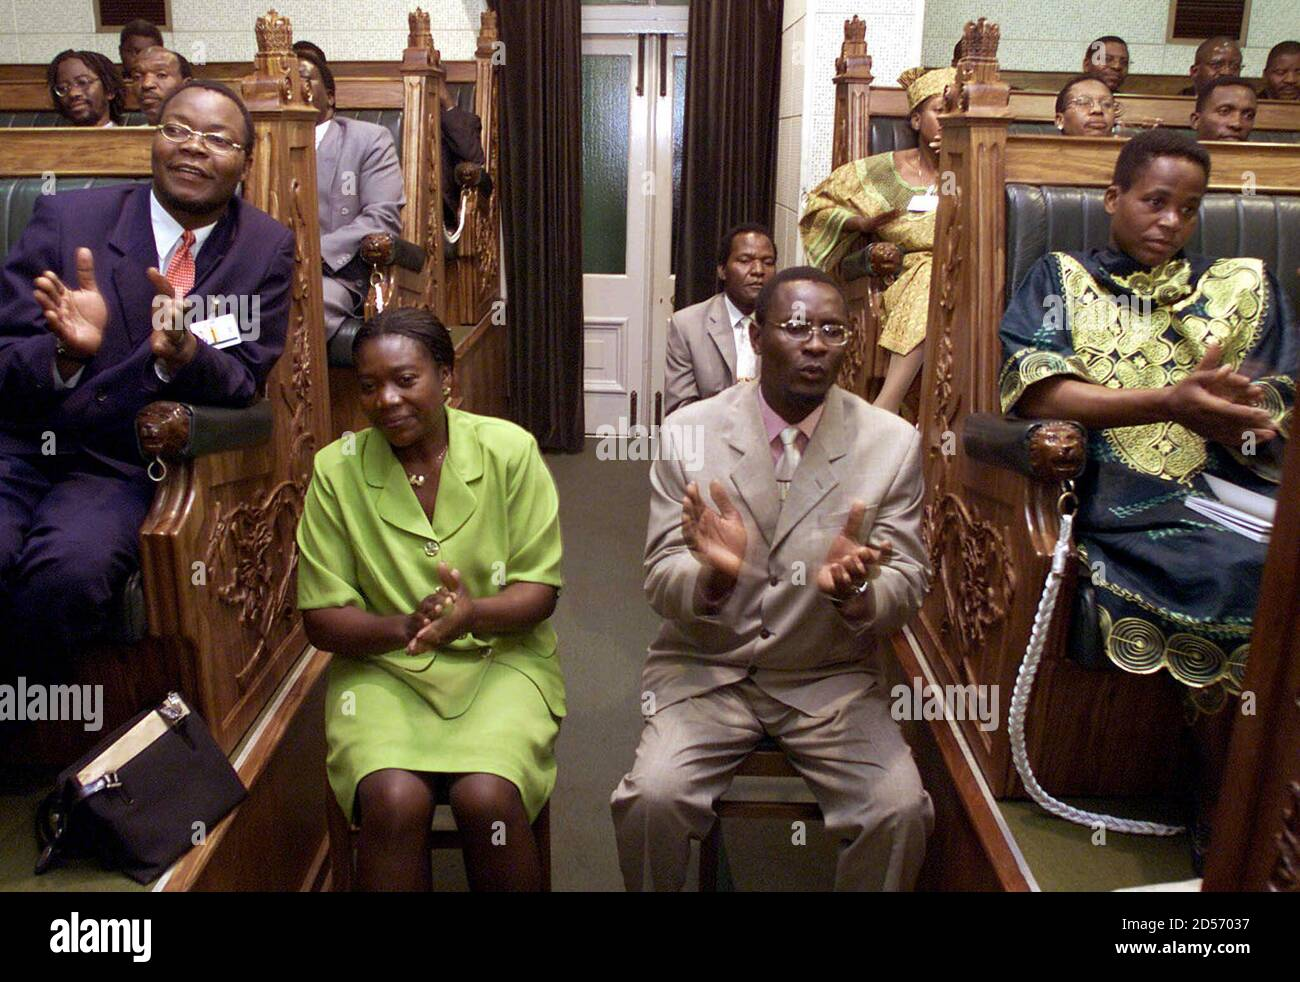 Movement for Democratic Change (MDC) members of parliament Hilda Mafudze (2L) and Gabriel Chaibva (2R), seated in the aisle of the backbenches, celebrate as a colleague takes their oath in Harare July 18. The MDC won 57 of 120 elected seats in the new parliament to give the ruling [ZANU (PF)] its first real opposition since independence in 1980. Stock Photo